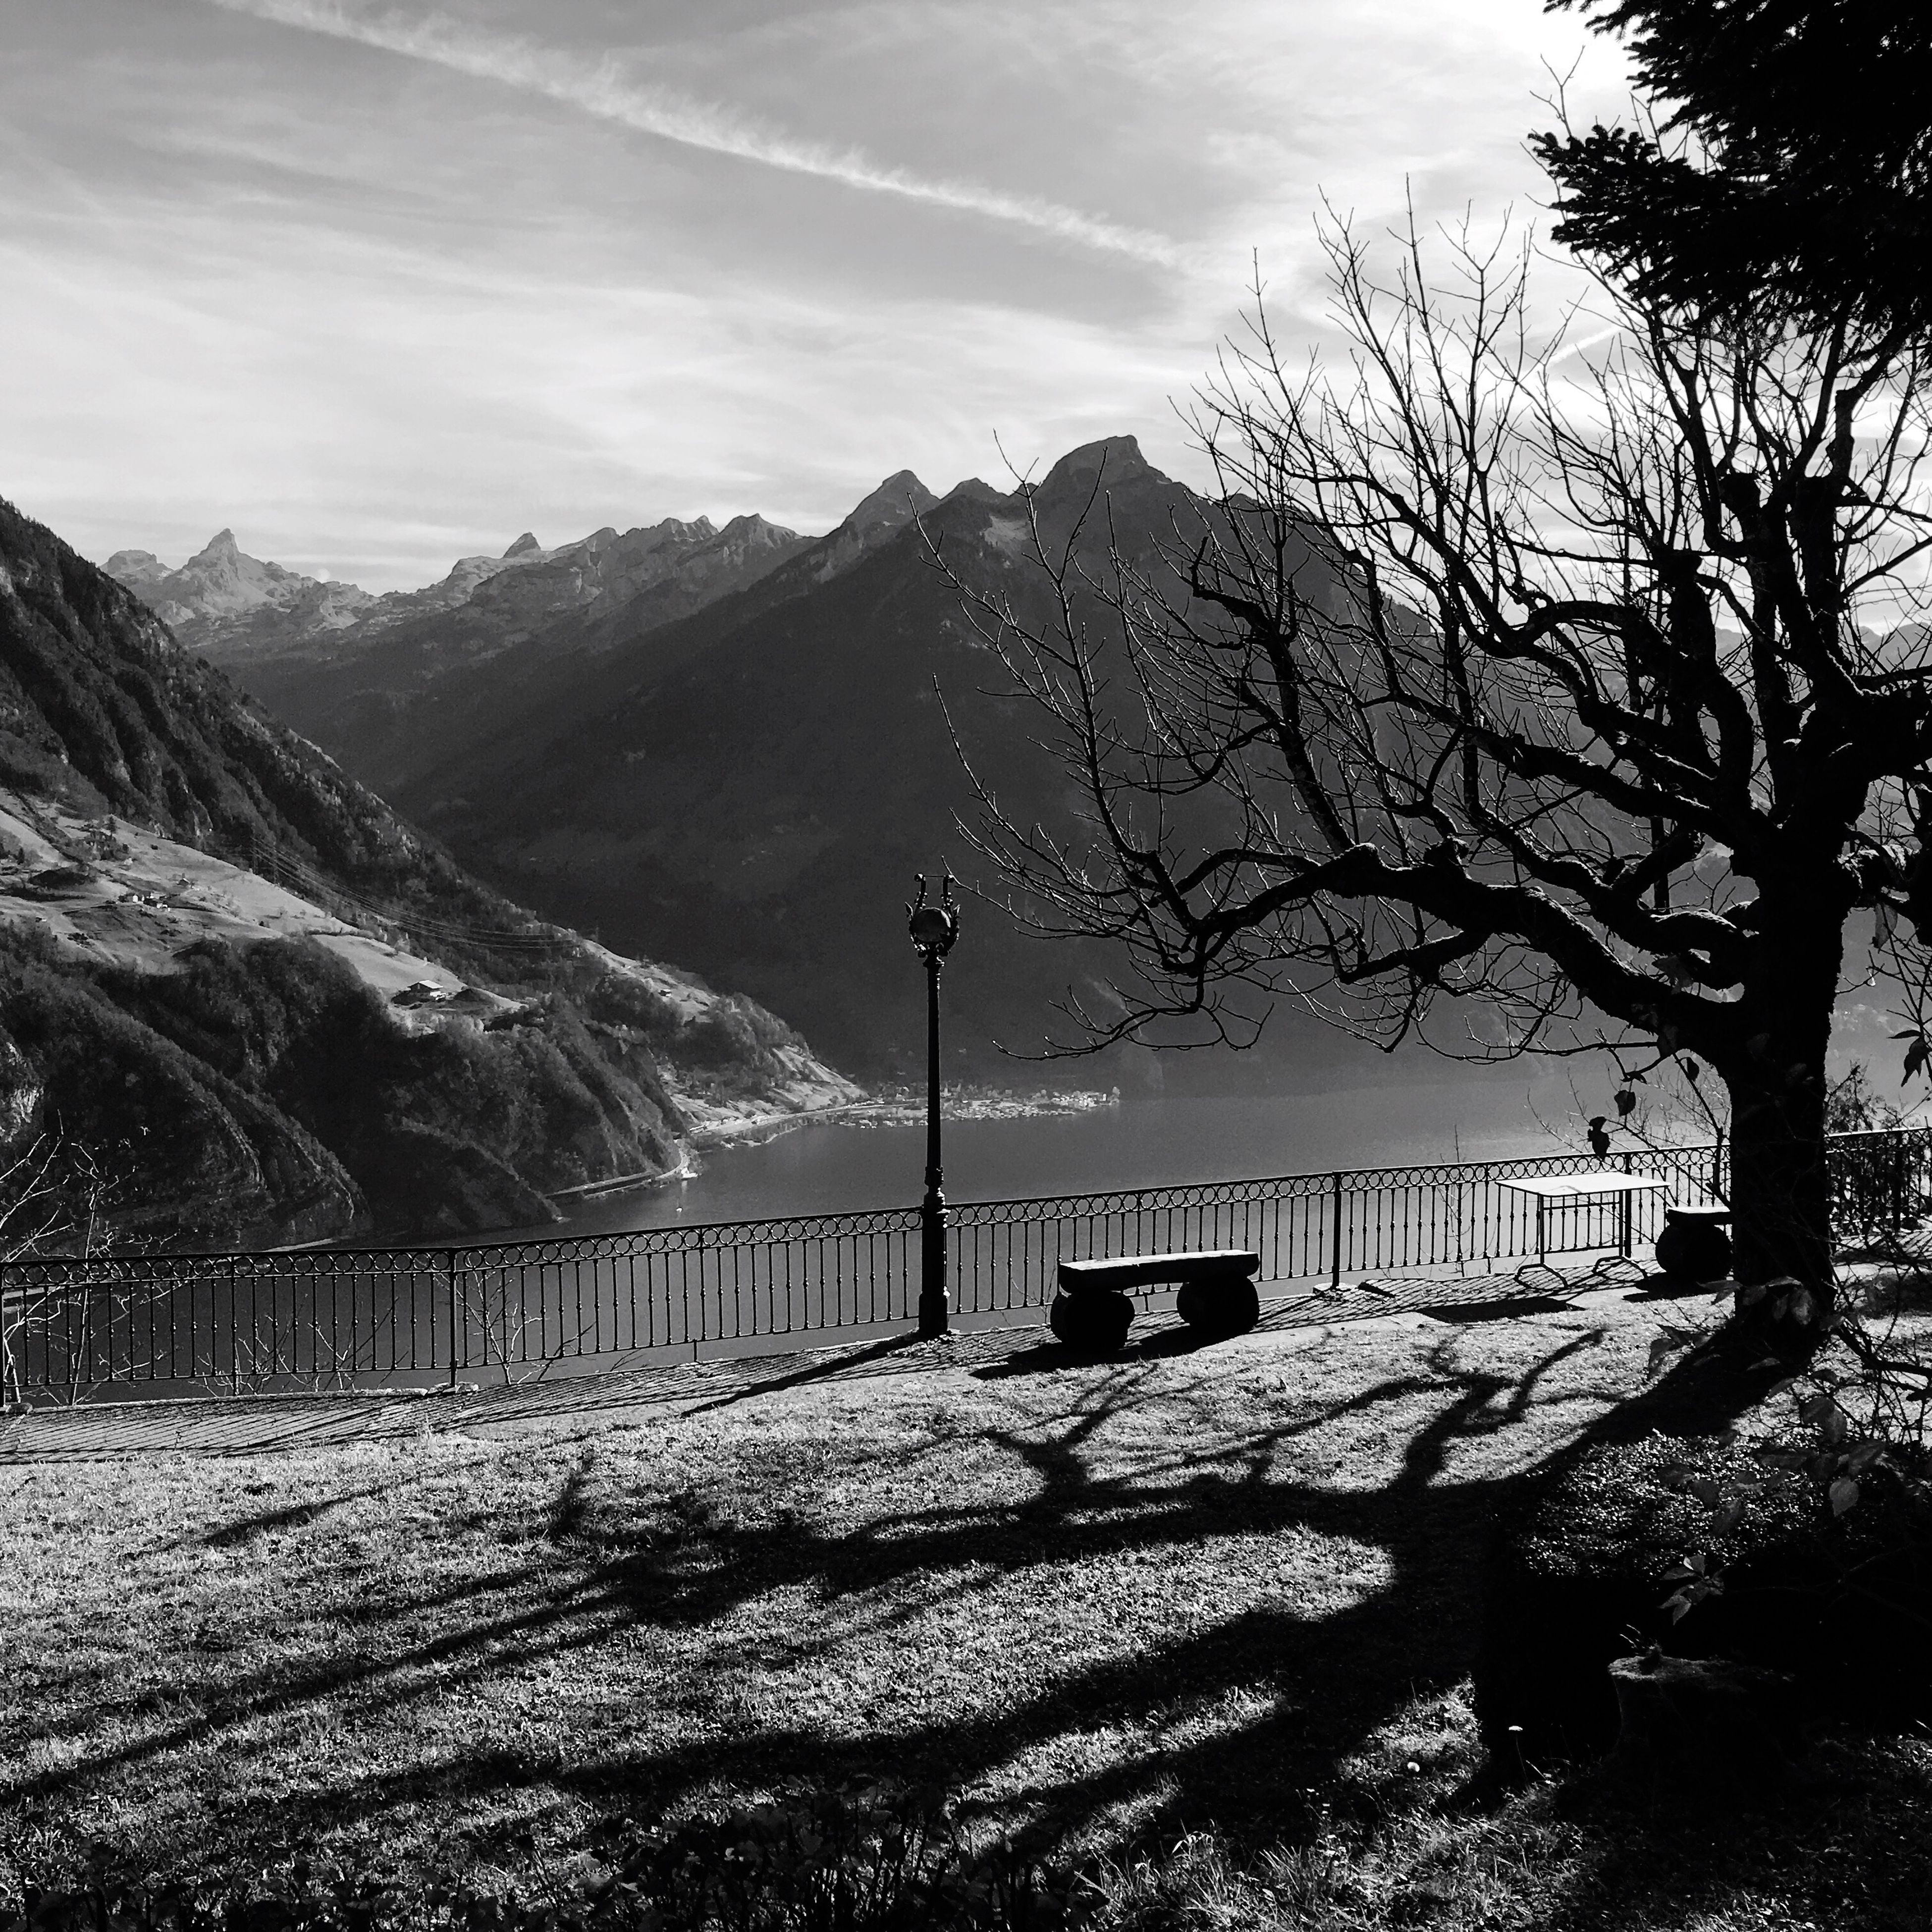 mountain, mountain range, tranquility, tranquil scene, sky, tree, scenics, landscape, beauty in nature, nature, non-urban scene, road, sunlight, railing, idyllic, remote, day, no people, outdoors, bare tree